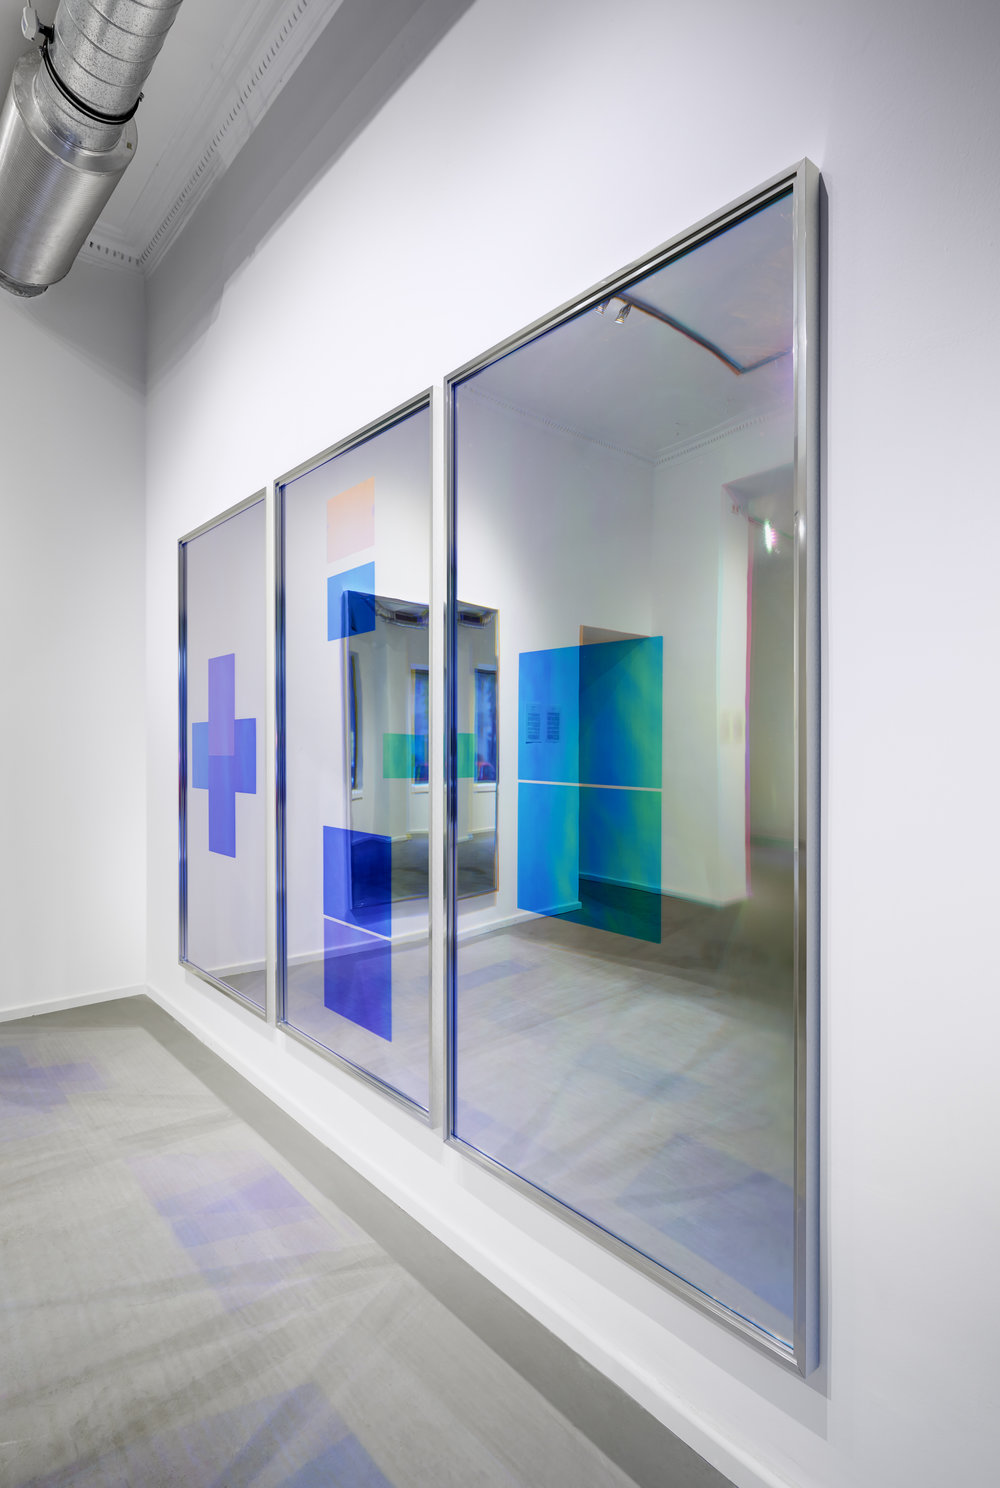 Spiegel im Spiegel / Part I, II, III, IV (Quadriptych),  2014 - Side view Acrylic foil on mirror beneath Radiant Plexiglas, aluminium frame structure 400 x 200 cm (157 x 79 in)